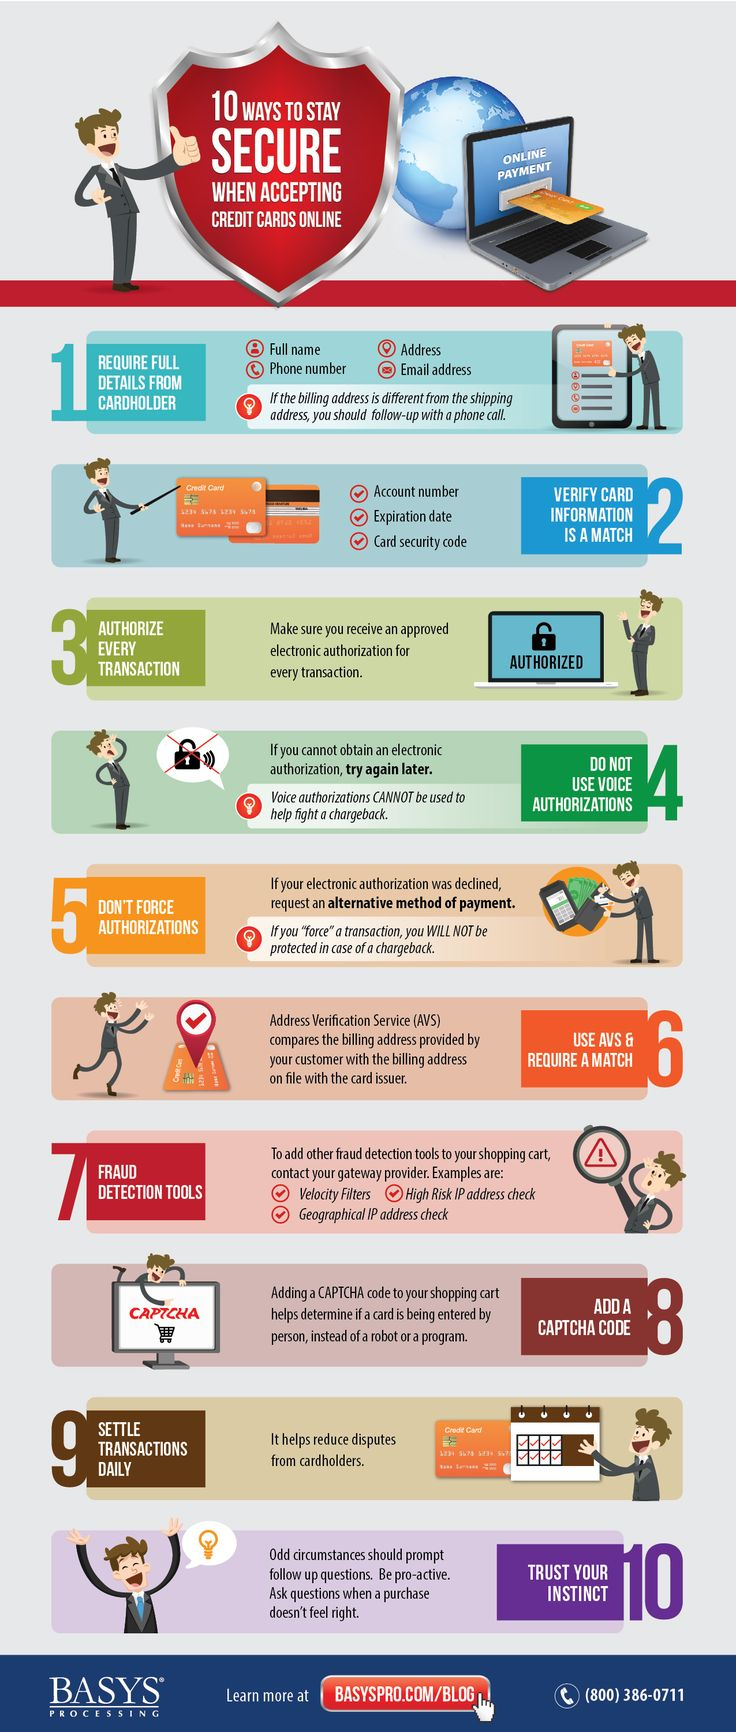 56 best credit card processing images on pinterest credit cards do you or your business accept credit cards online what proceedures do you have in colourmoves